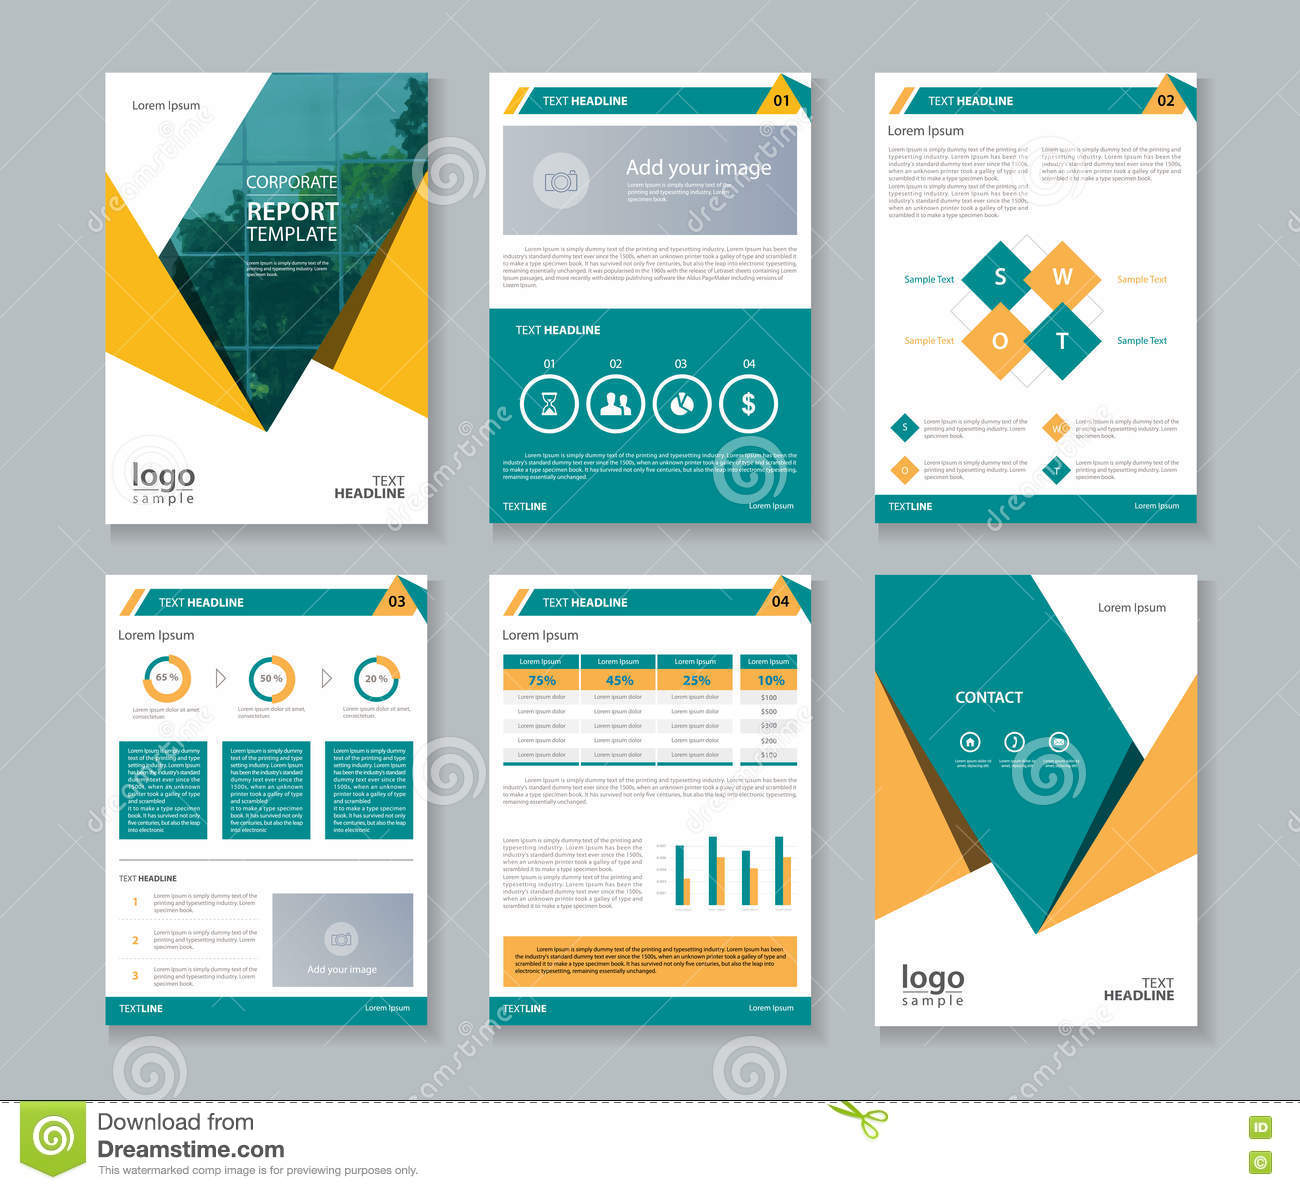 Business profile template free download ukrandiffusion business profile template free download business company profile report and brochure layout template stock fbccfo Images